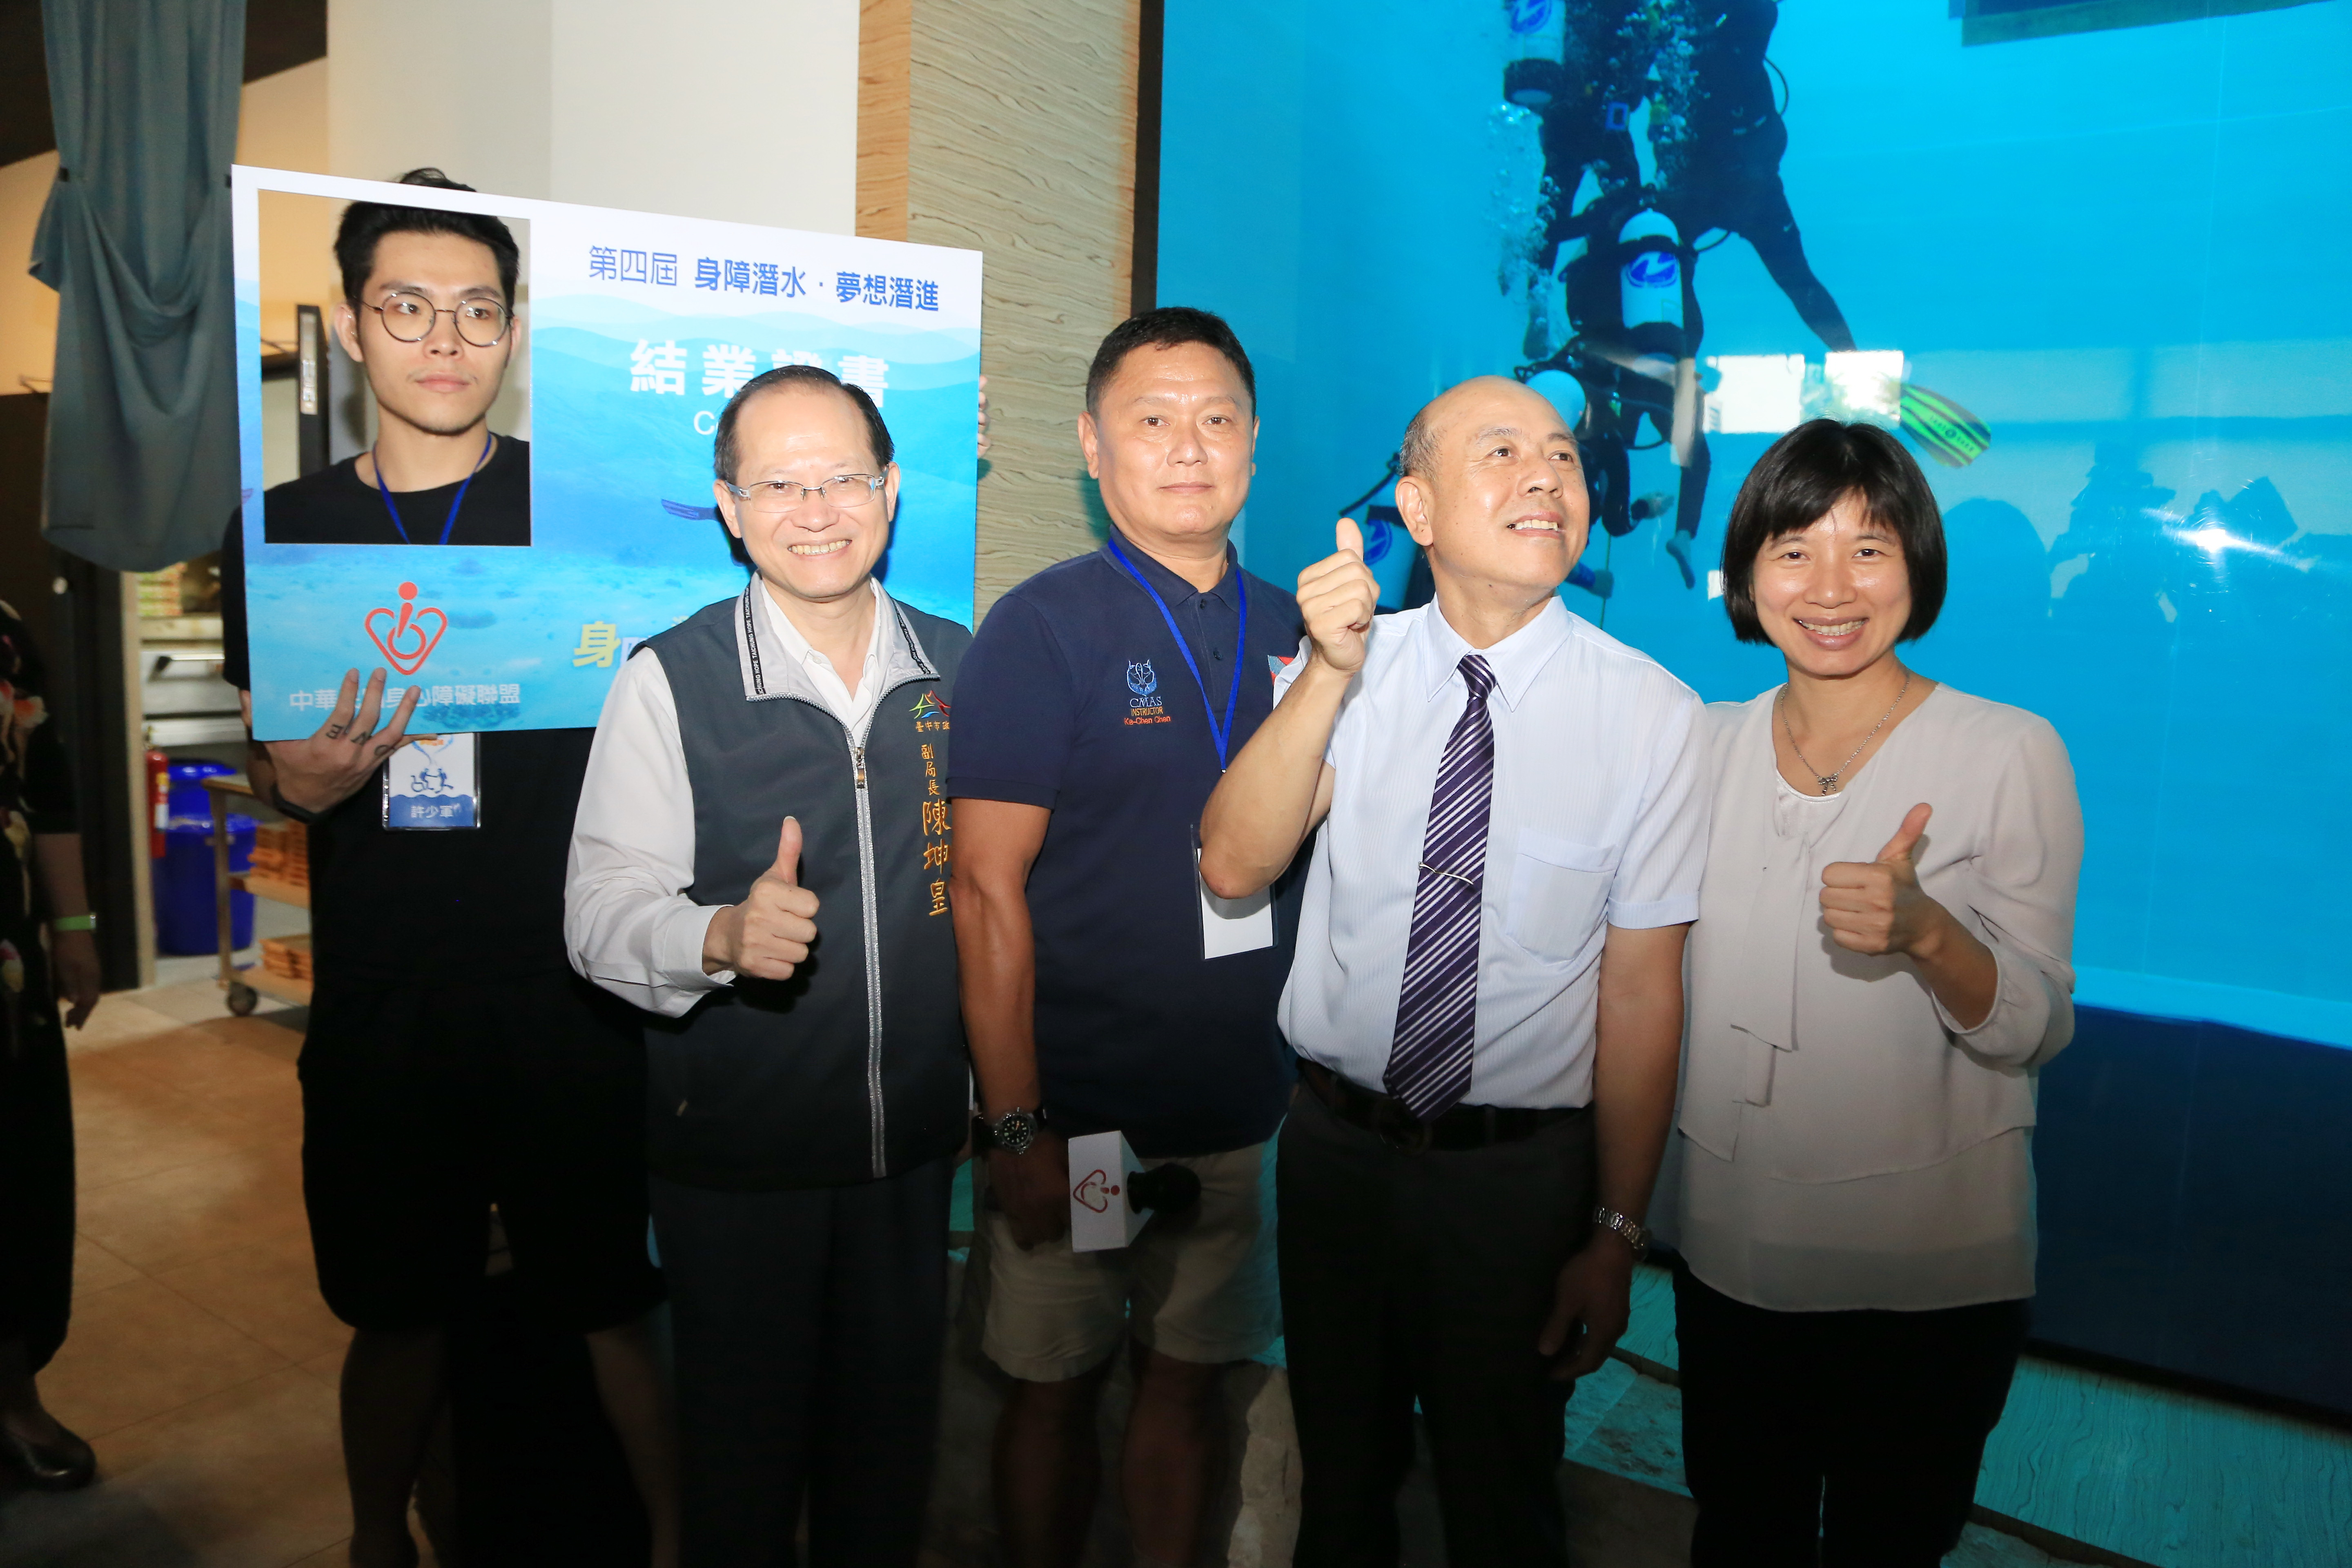 Diving with Disabilities Training Closing Ceremony, International Diving with Disabilities Conference to be Held in September